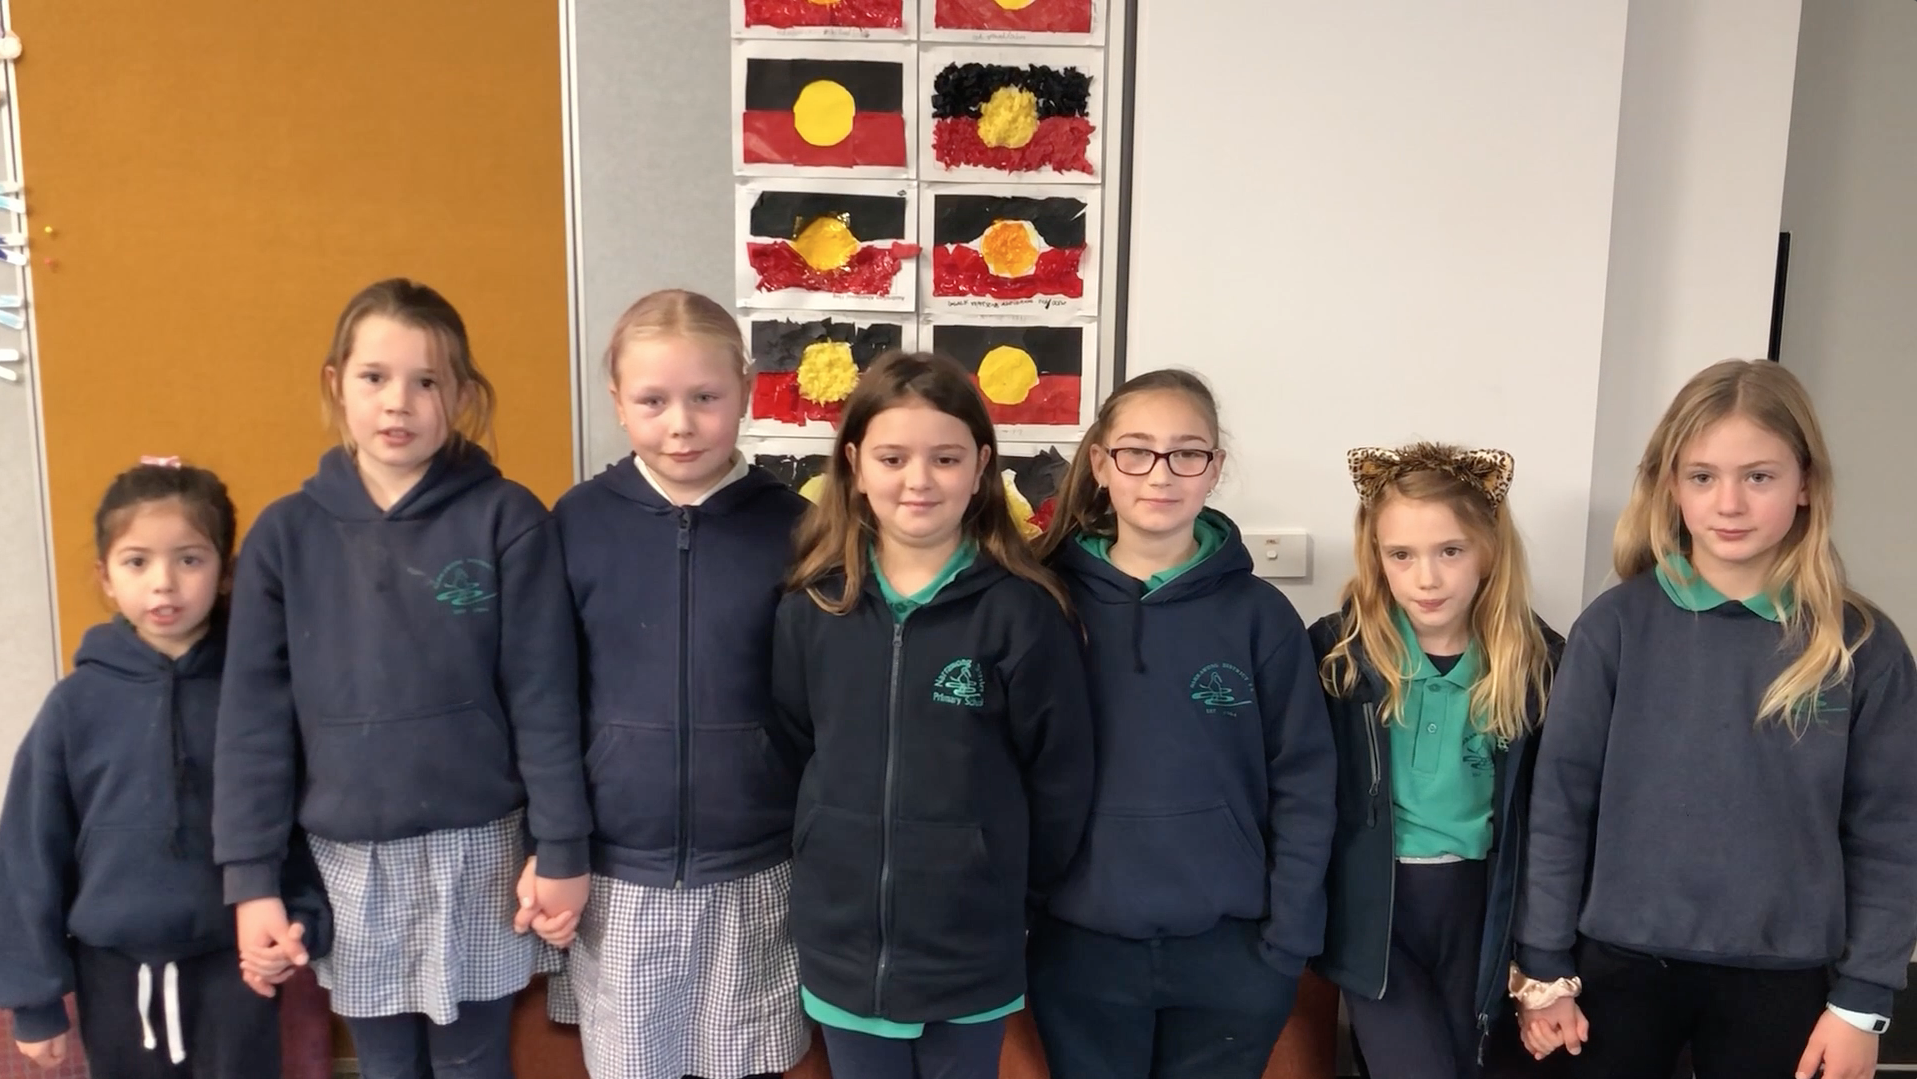 Narrawong District Primary School